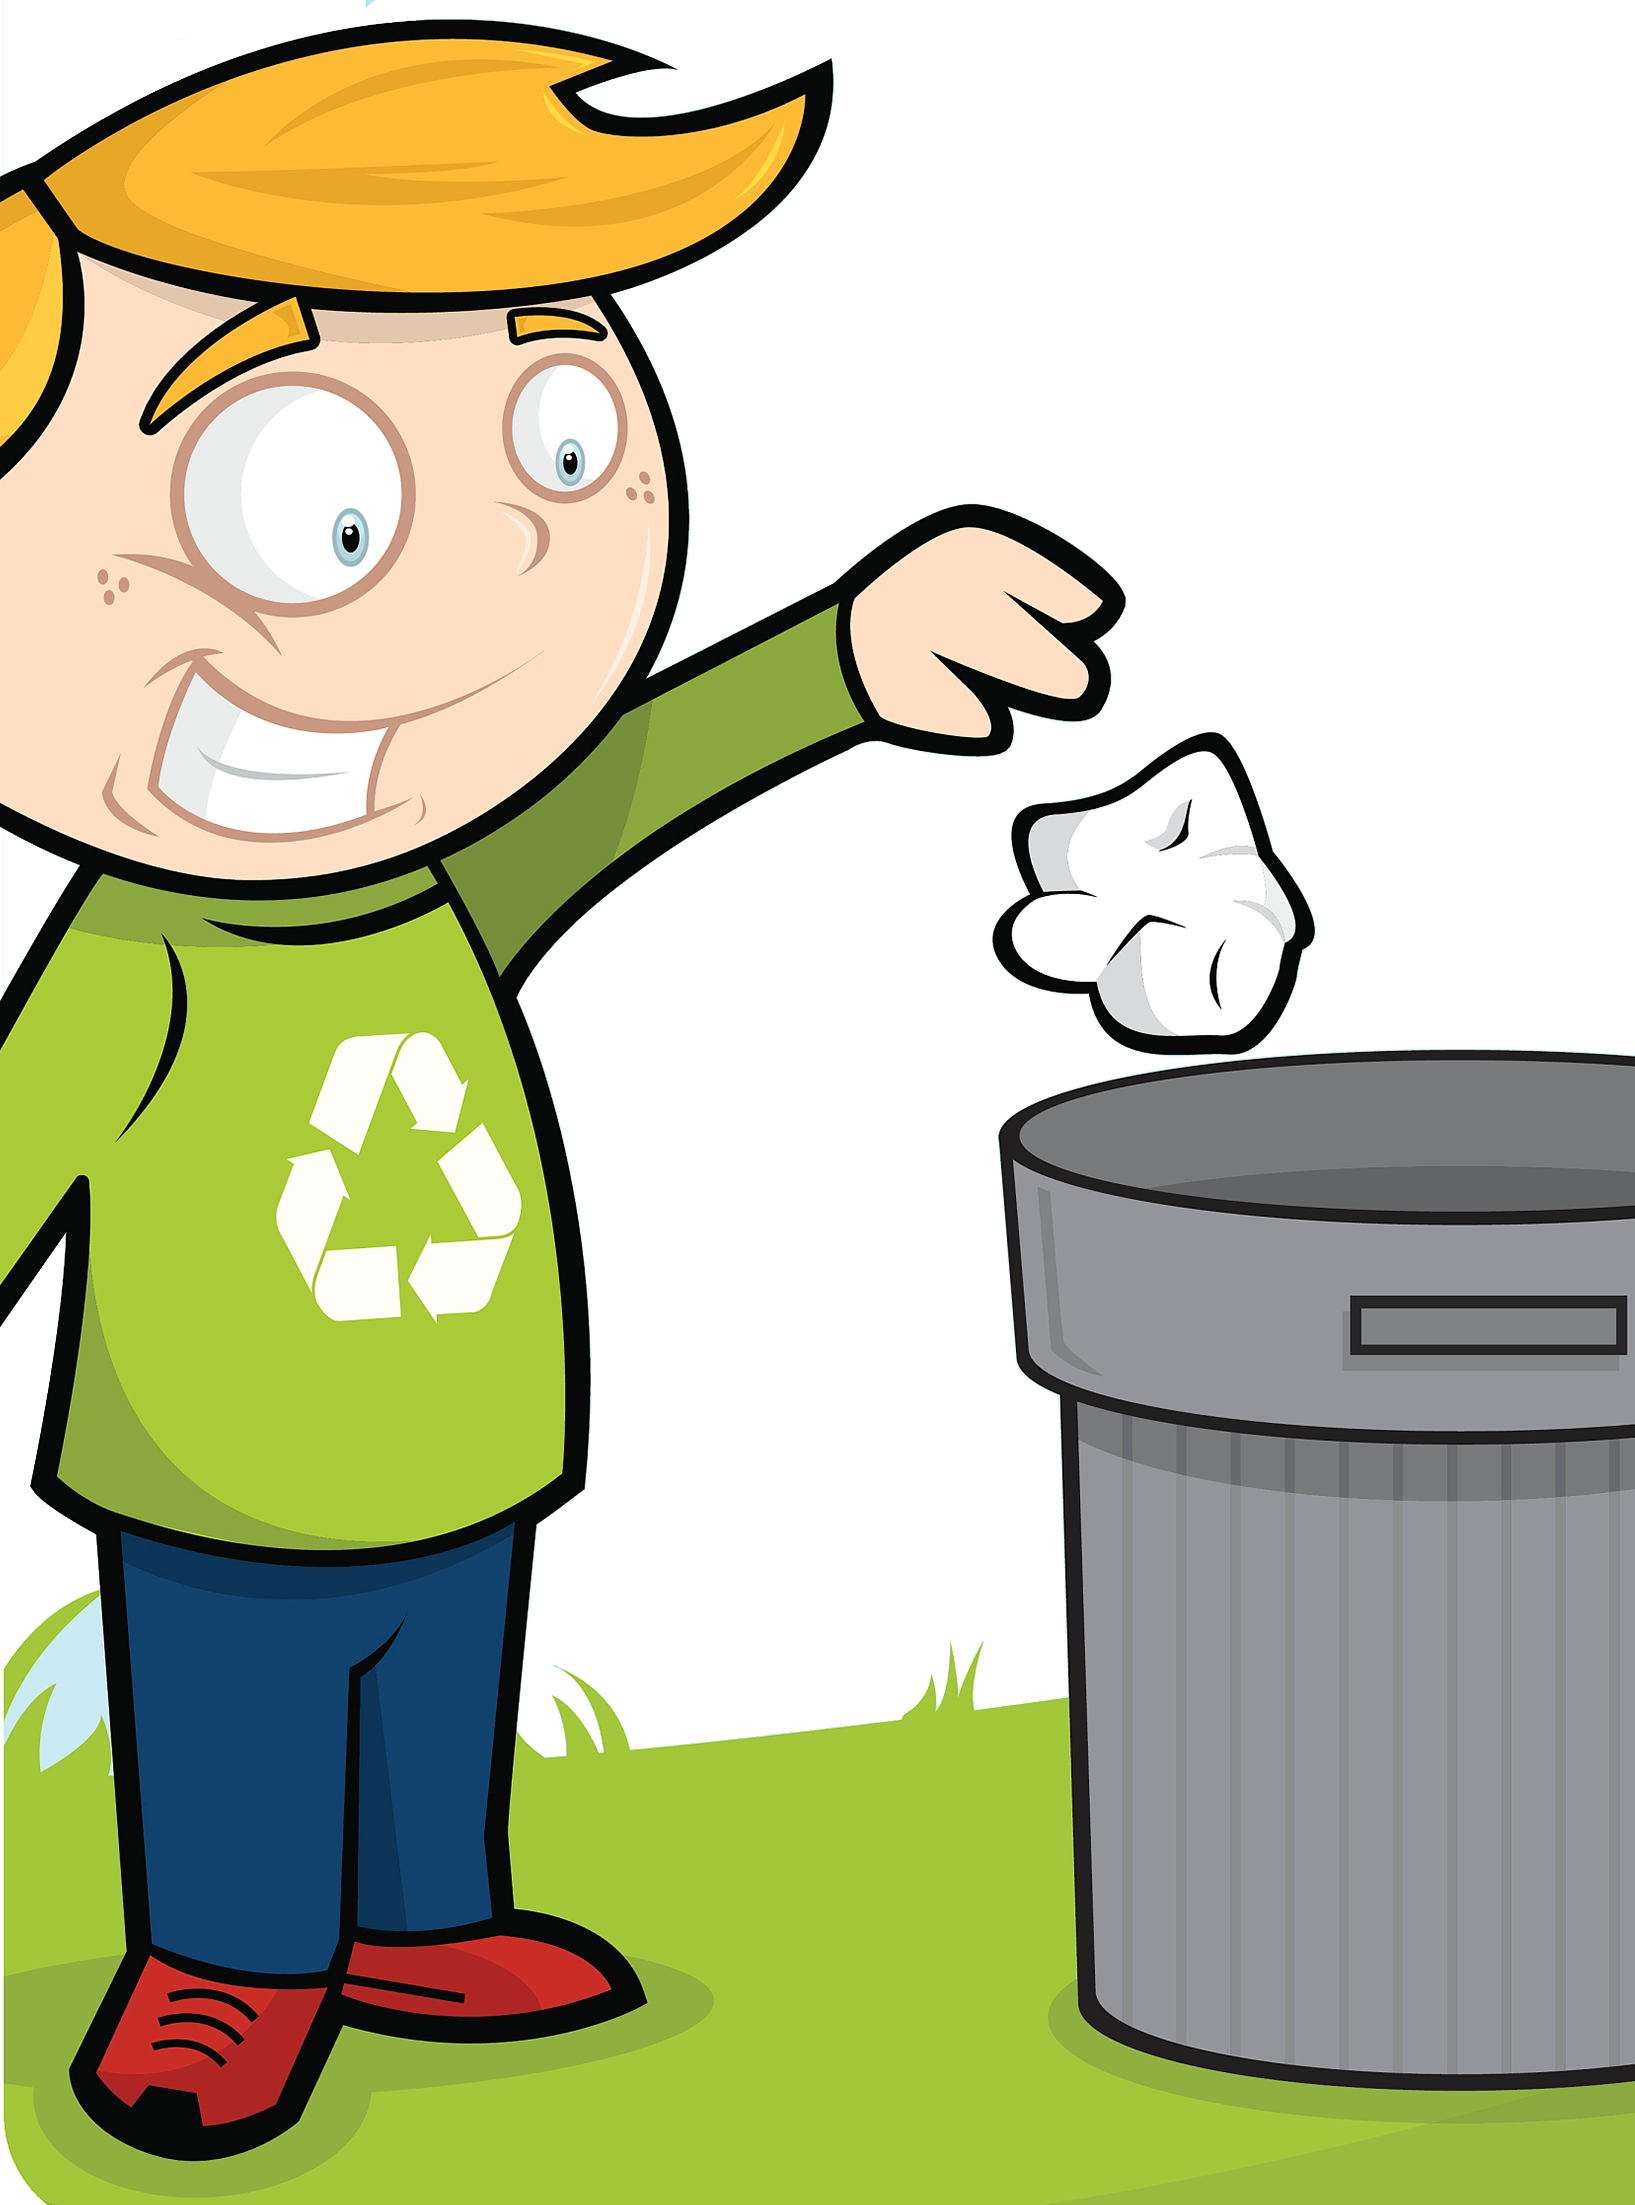 Human clipart human waste. Cleanliness child throwing trash